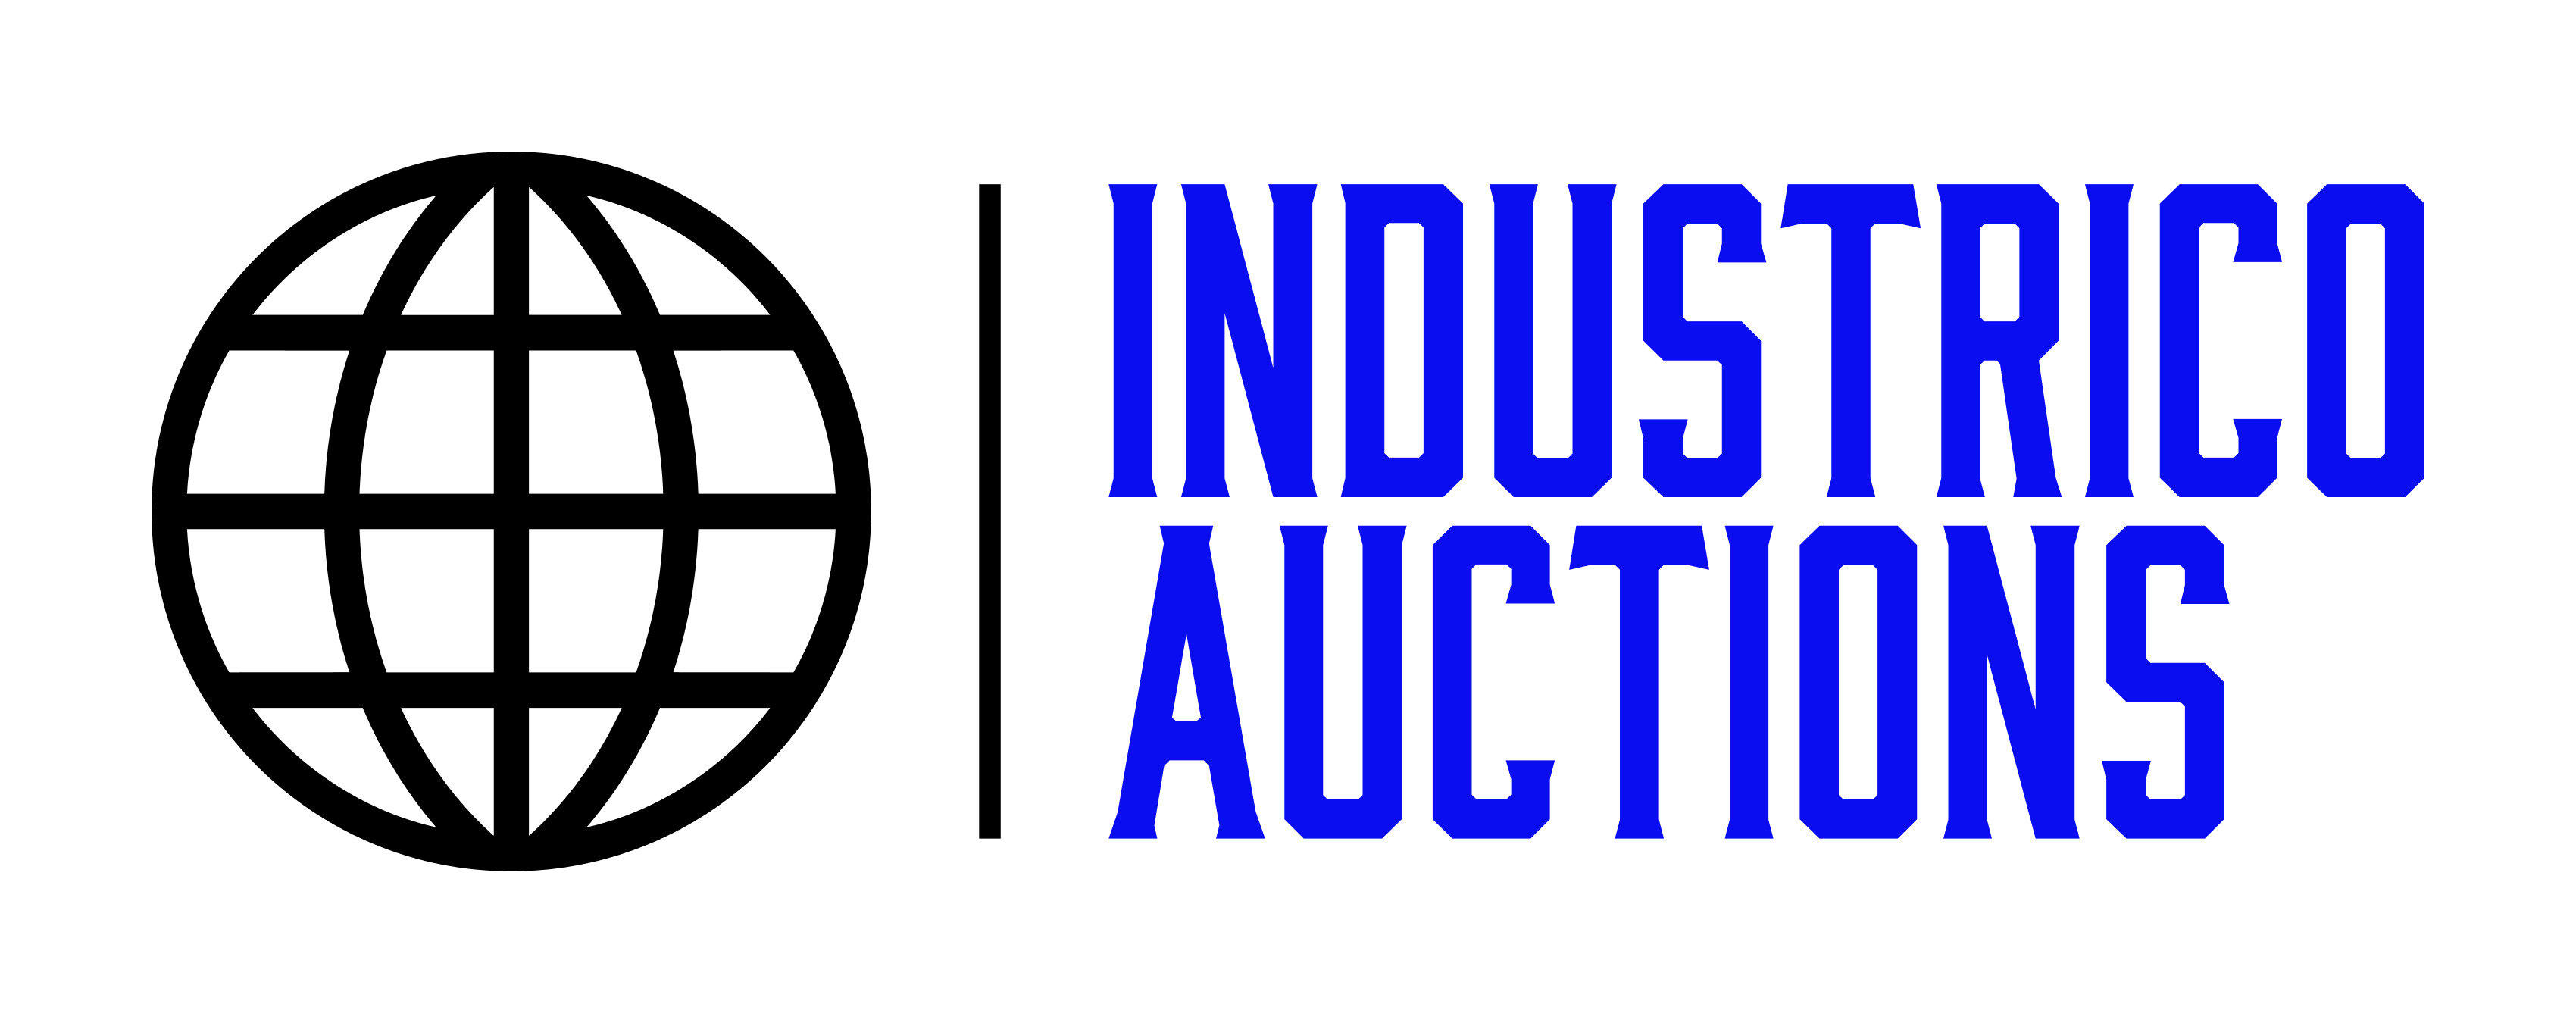 Industrico Auctions